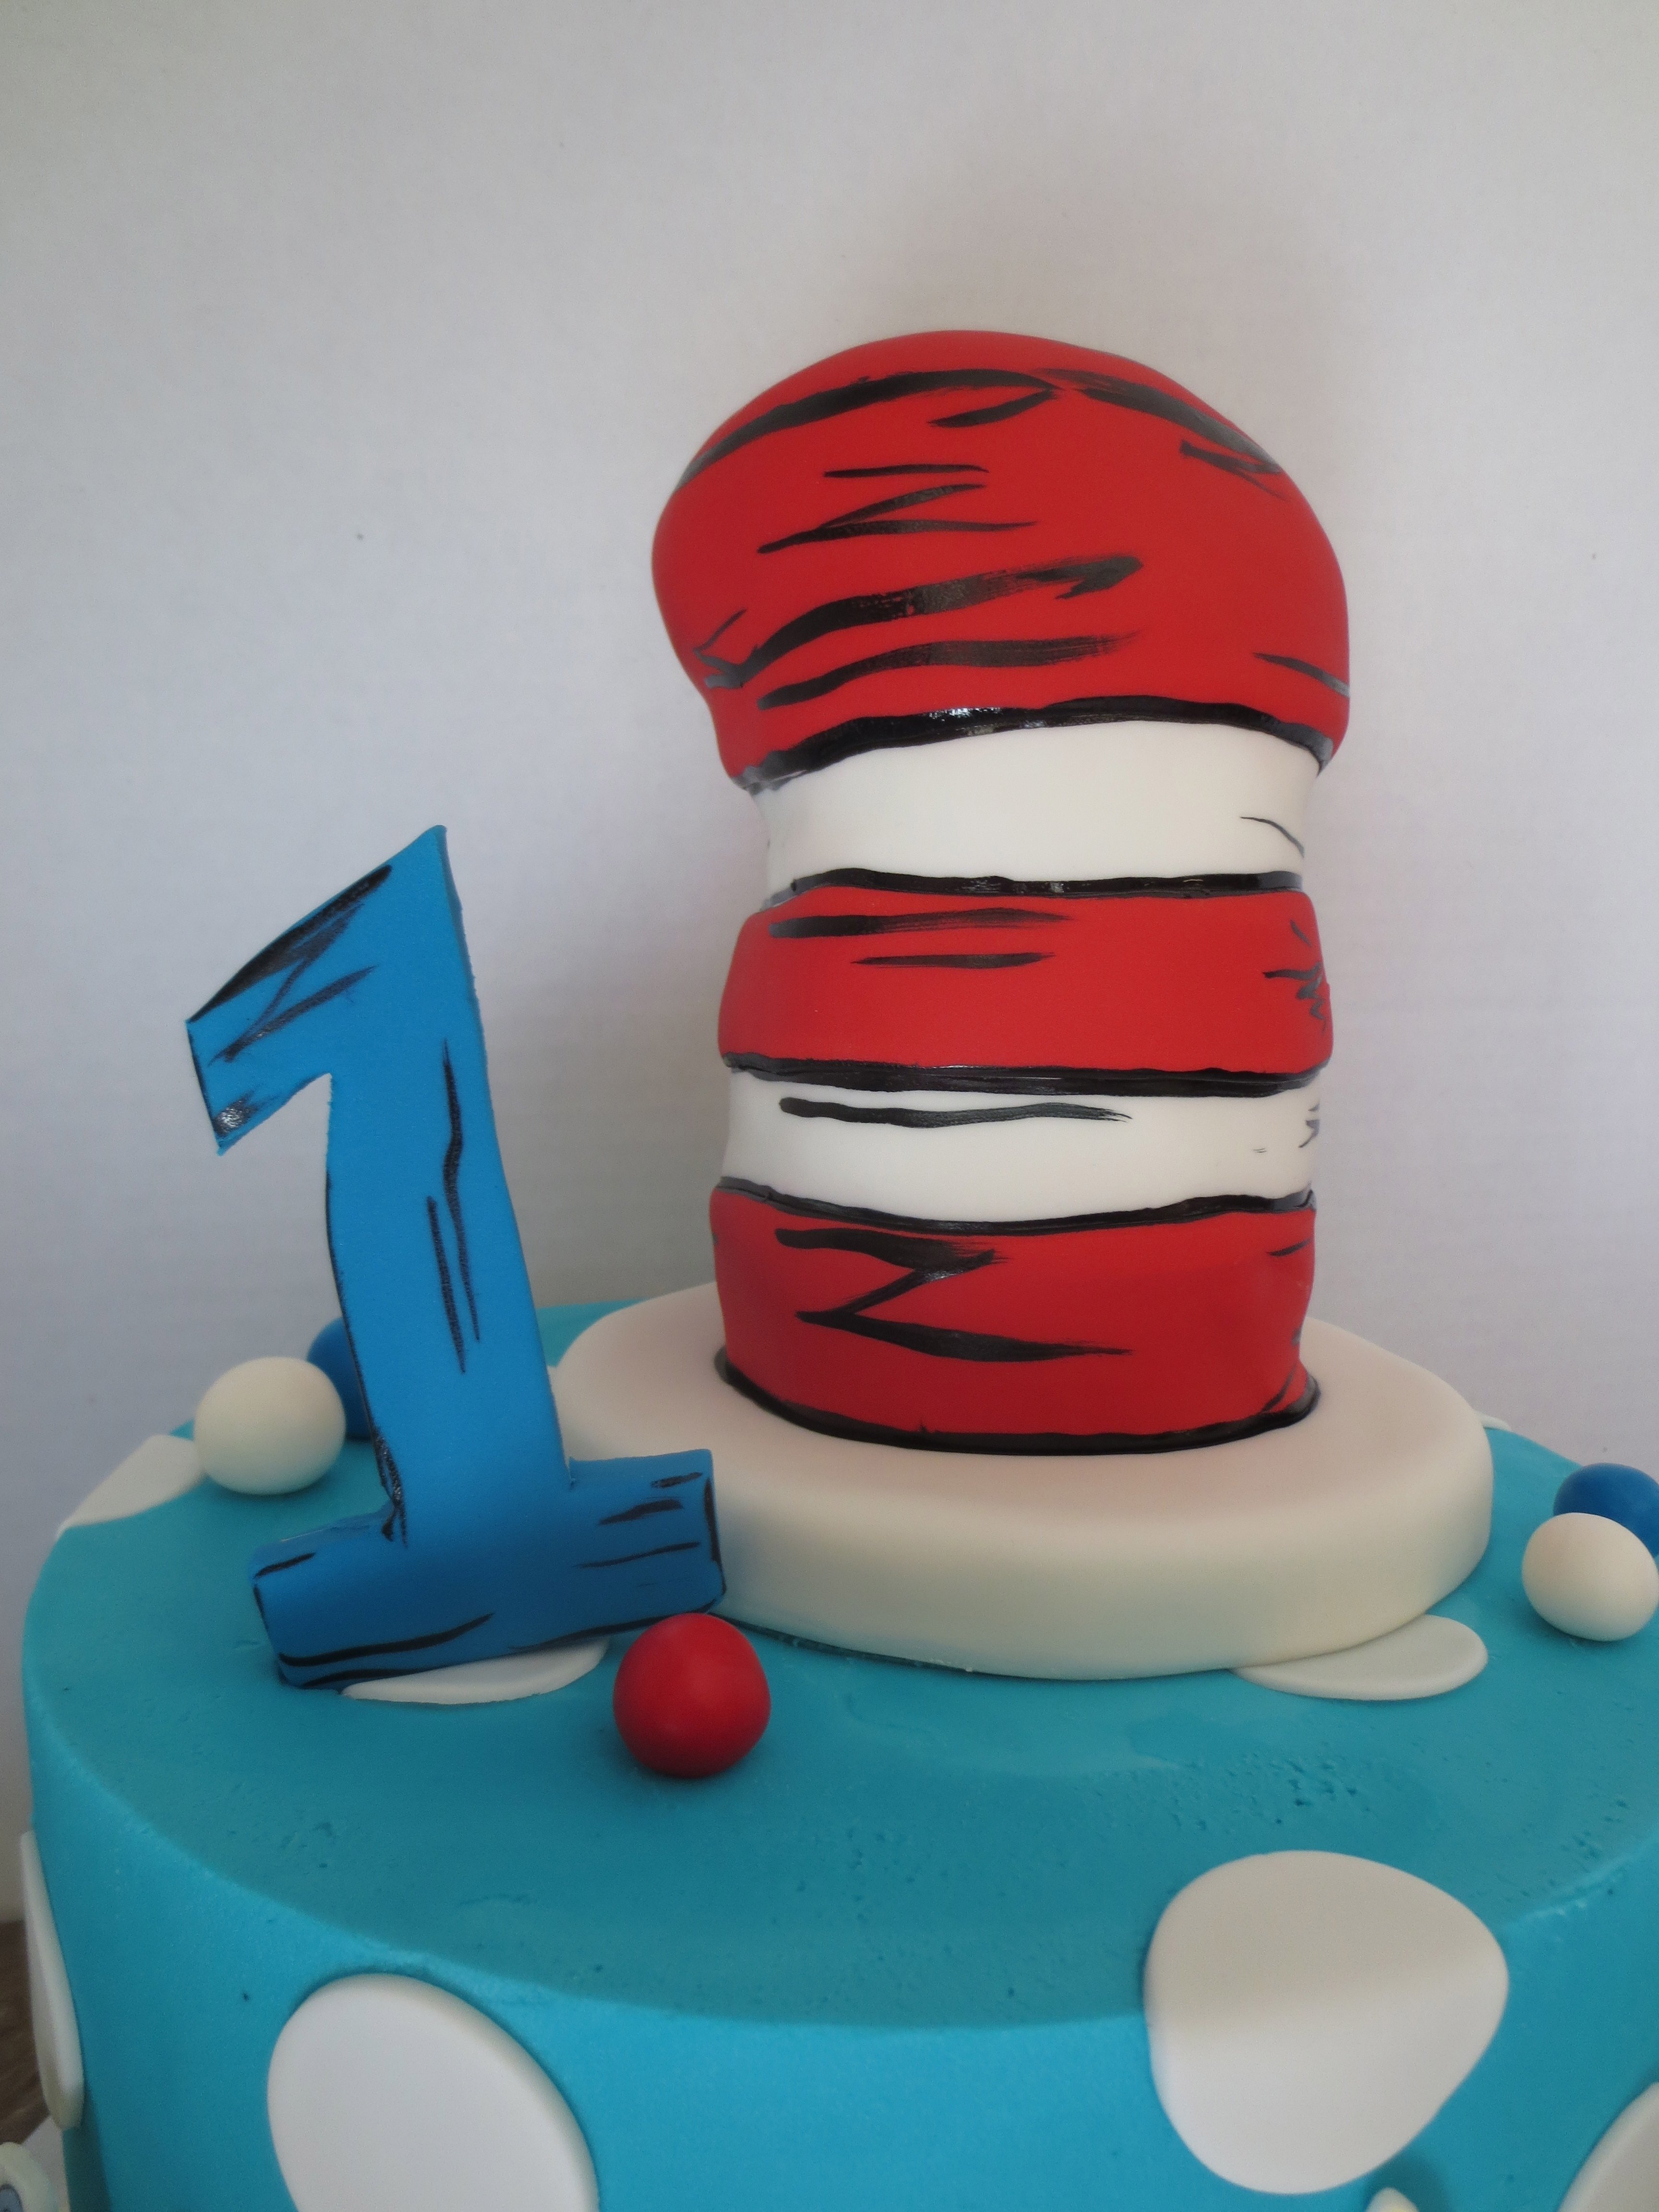 10 Attractive Cat In The Hat Cake Ideas cat in the hat cake with other dr seuss characters byrdie girl 2020